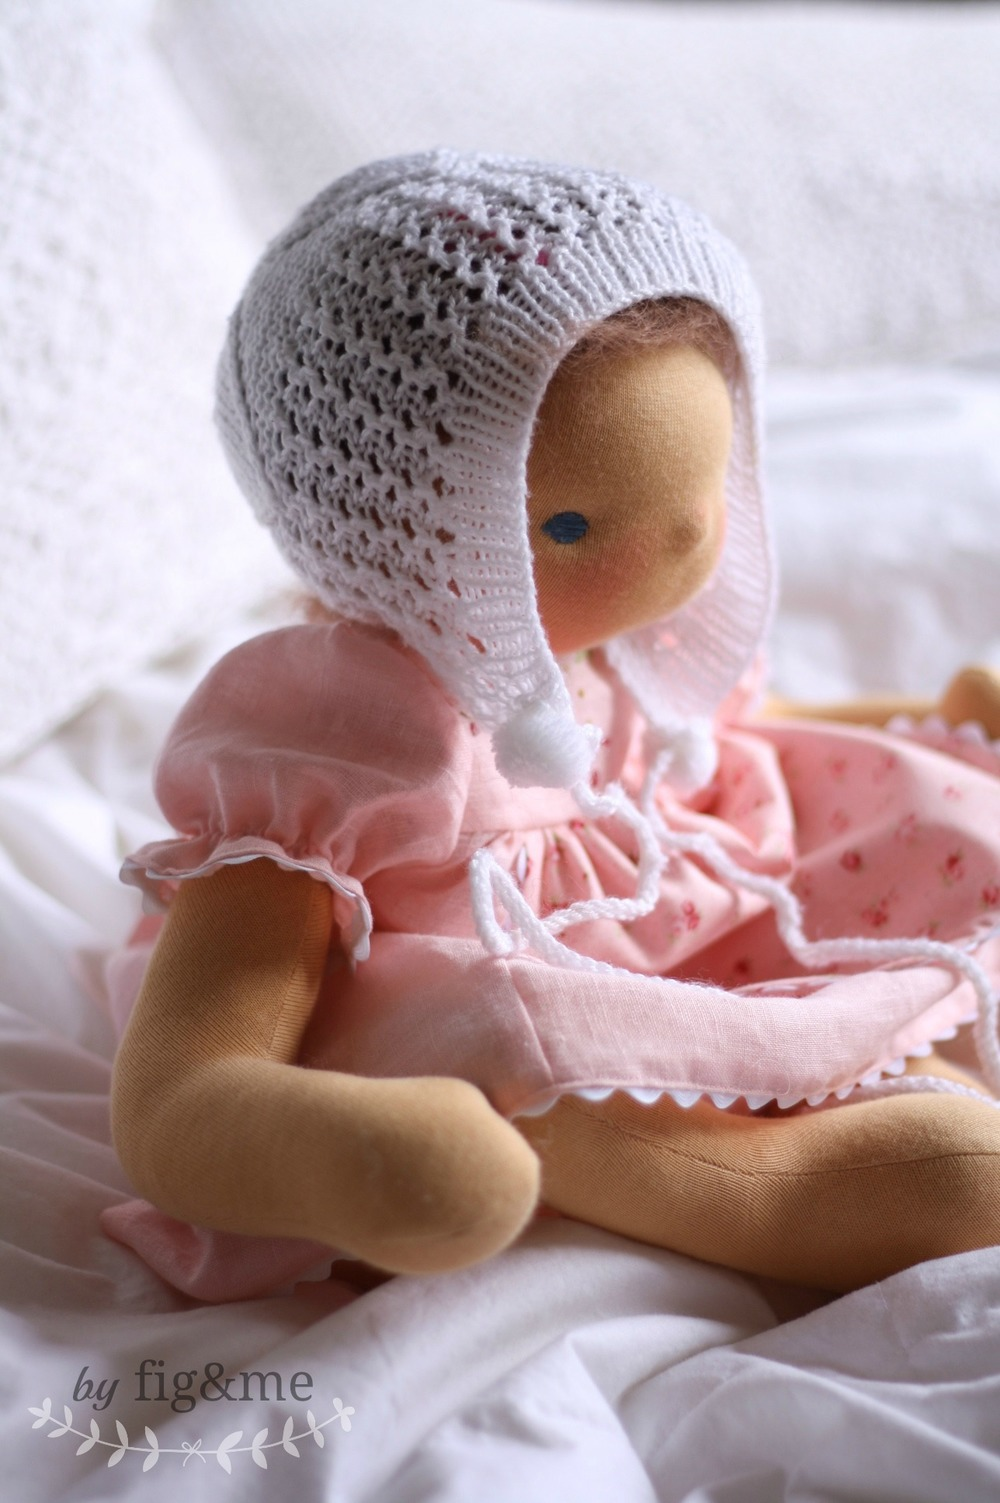 Handmade natural doll in pretty pink, by Fig and me.